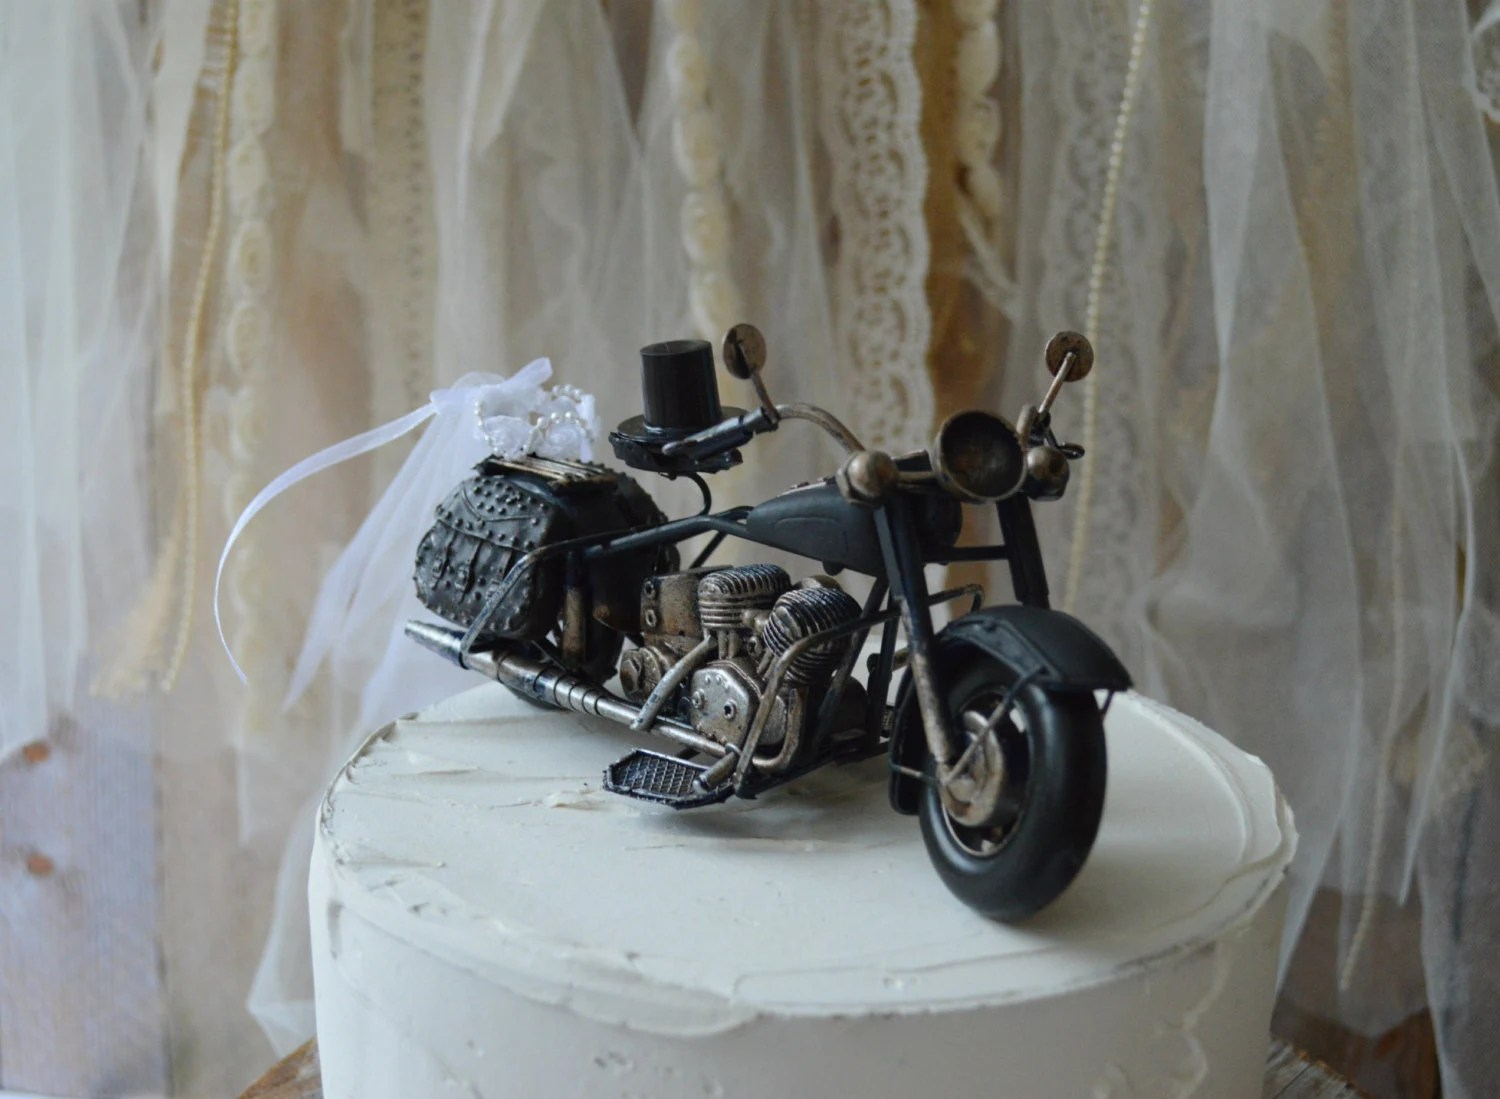 motorcycle wedding harley davidson wedding rings Motorcycle wedding cake topper motorcycle topper Harley rider themed wedding groom s cake topper bride and groom rider ring holder metal